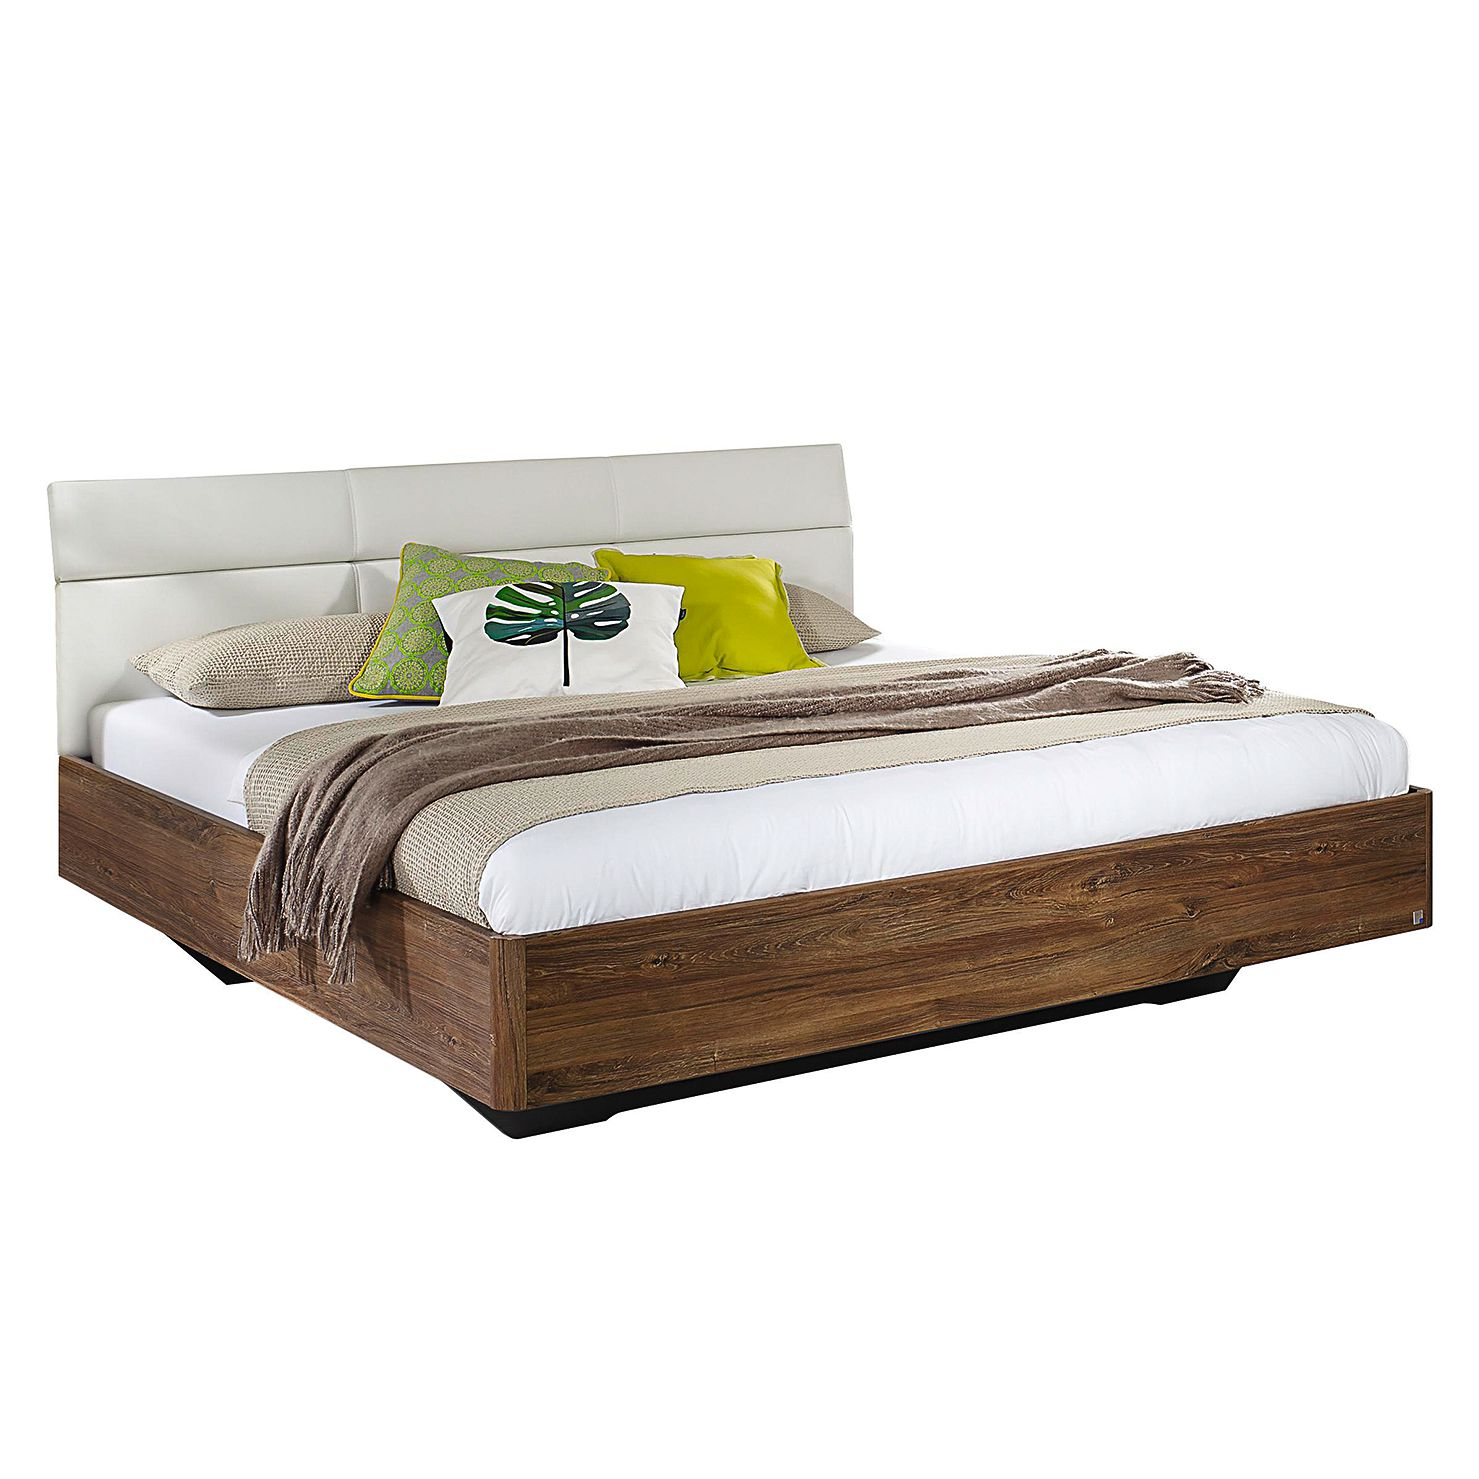 Bed Kelheim - 180 x 200cm - Stirling eikenhouten look/Alpinewit, Rauch Packs